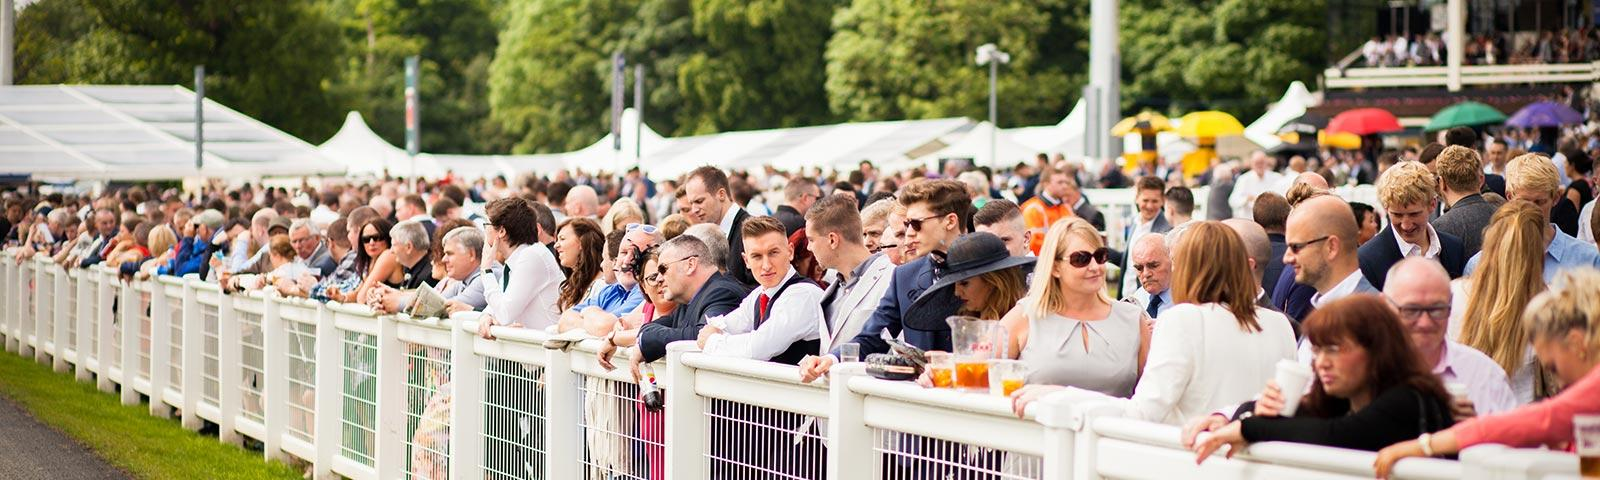 Crowds watching racing at Newcastle Racecourse.